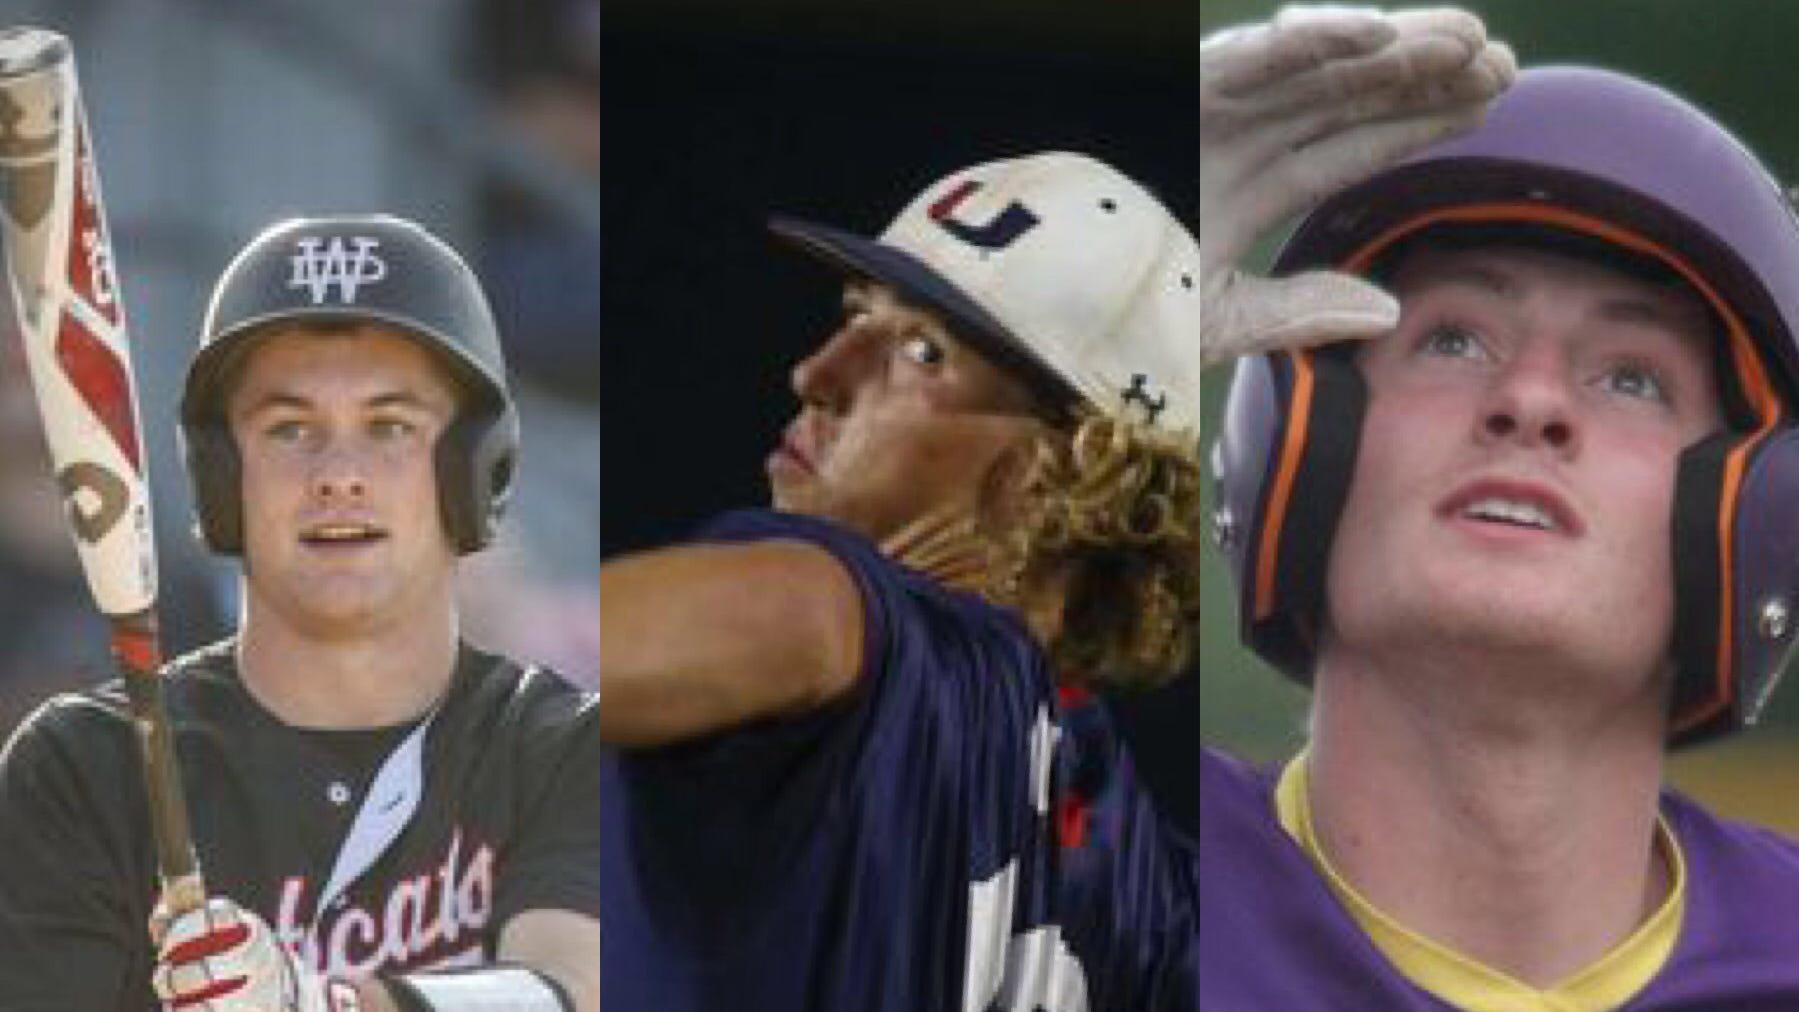 Meet the 2018 All-Iowa Baseball Player of the Year finalists